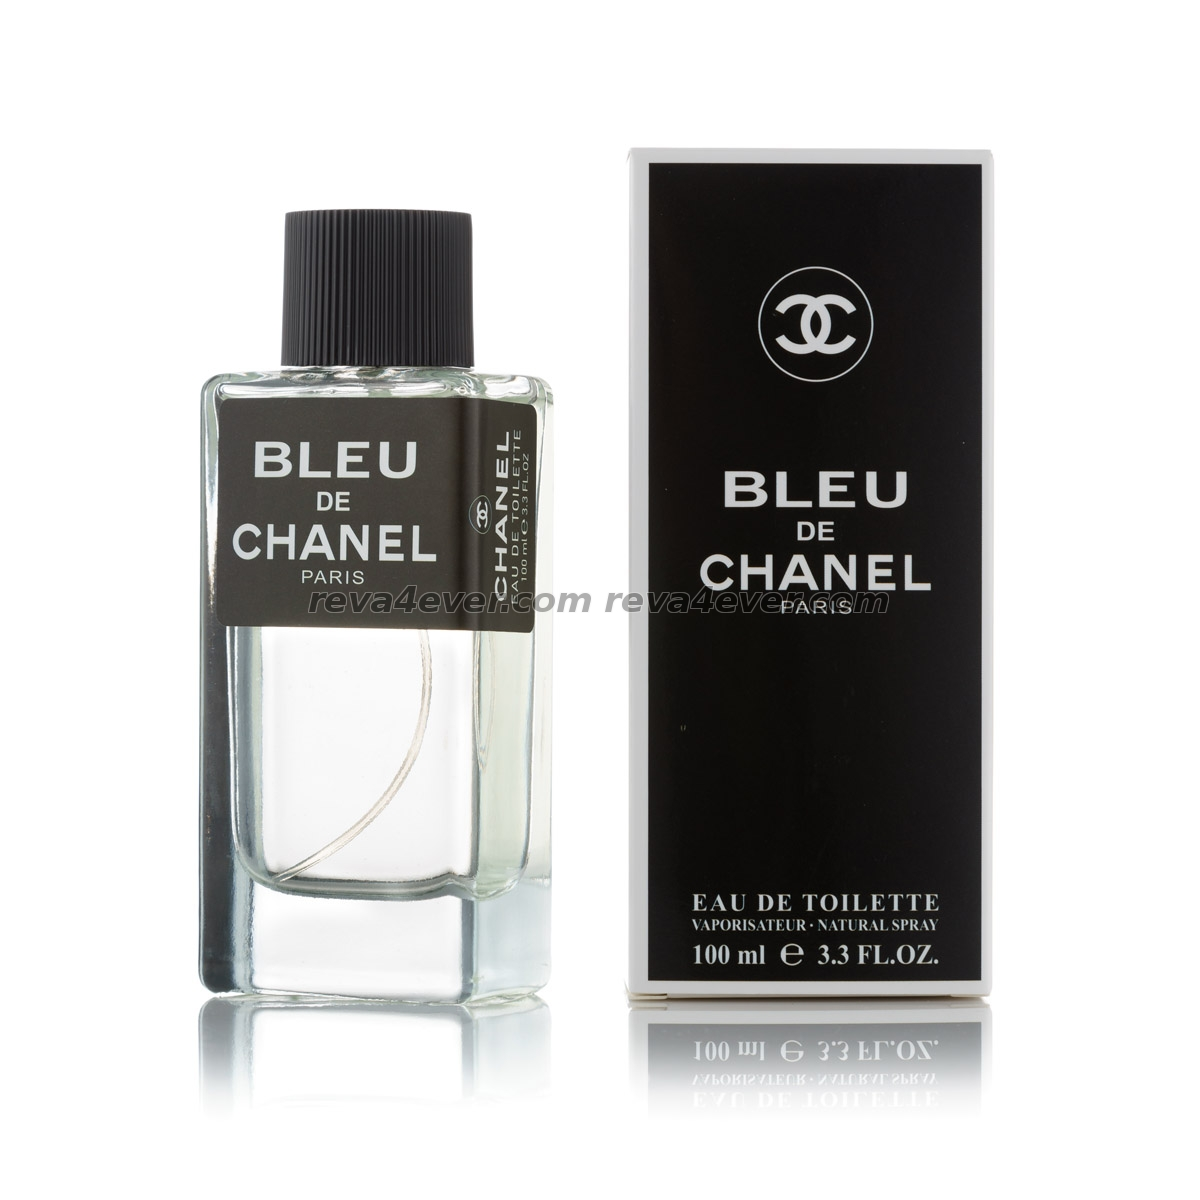 Chanel Bleu edt 100ml Imperatrice